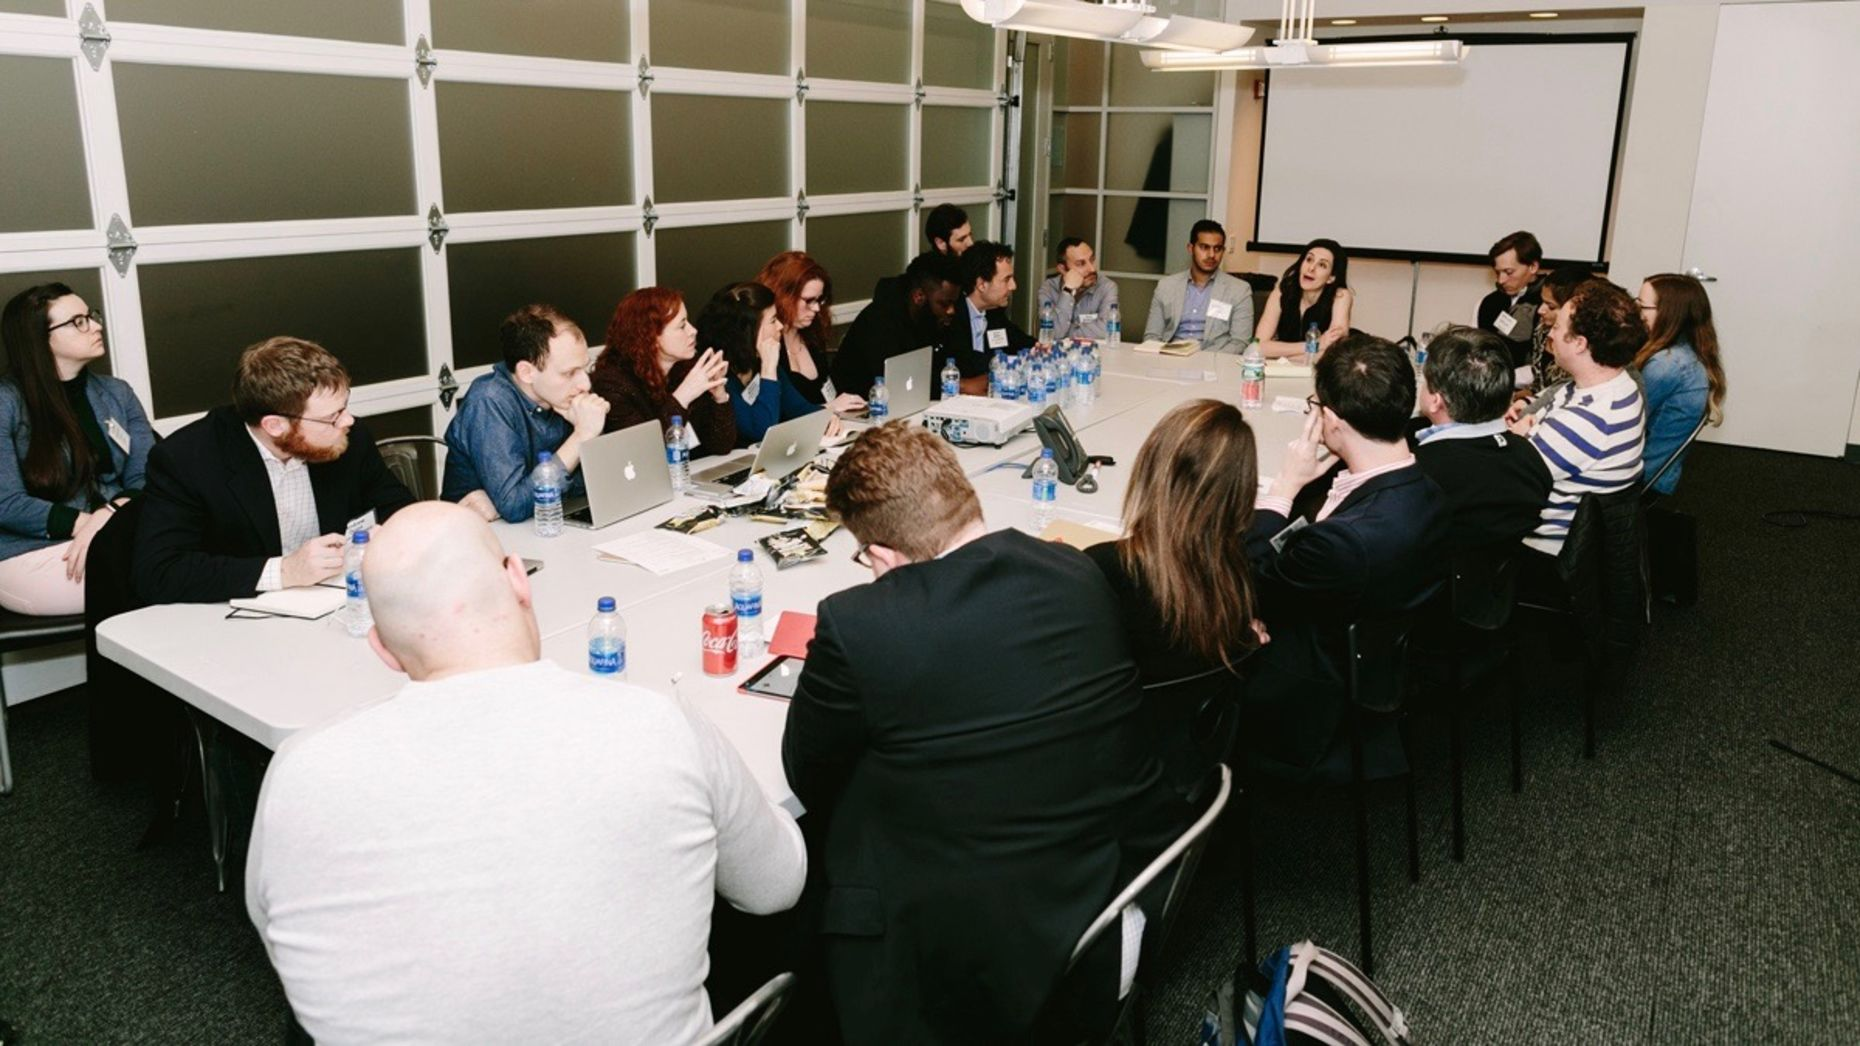 The Information Accelerator's Media Bootcamp in New York earlier this year. Photo by Karen Obrist.